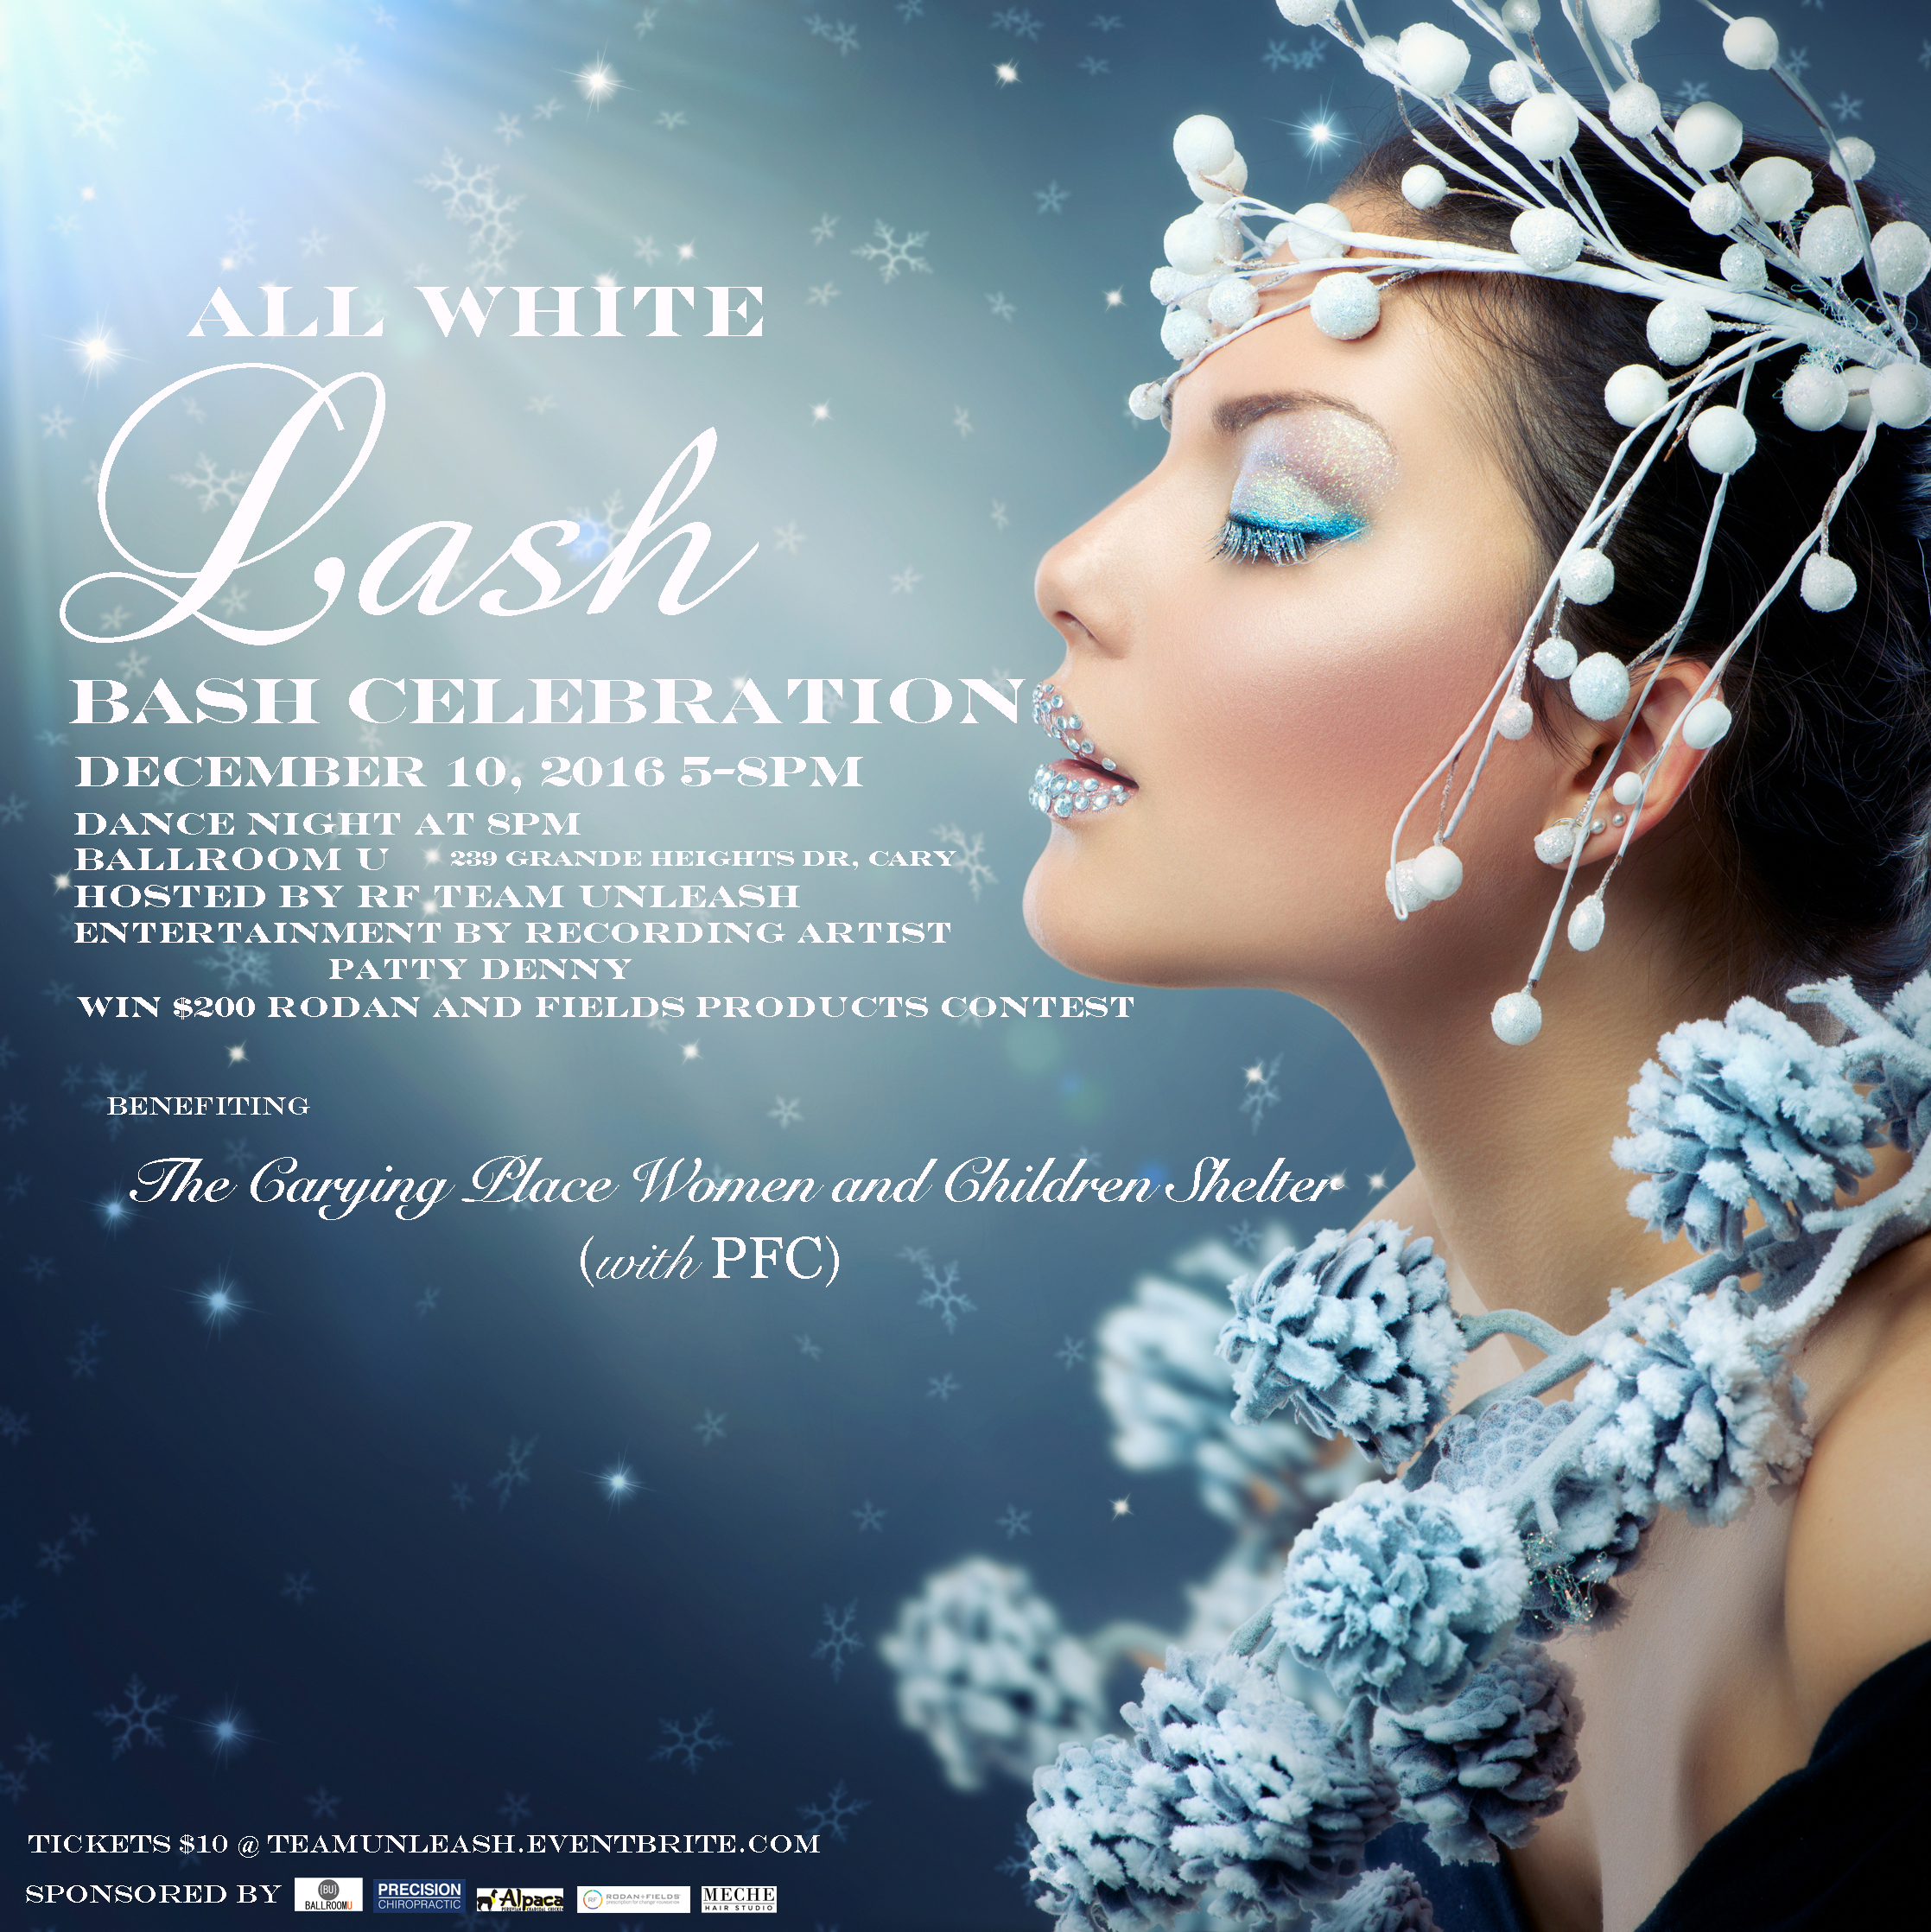 all-white-lash-bash-celebration-flyer_1